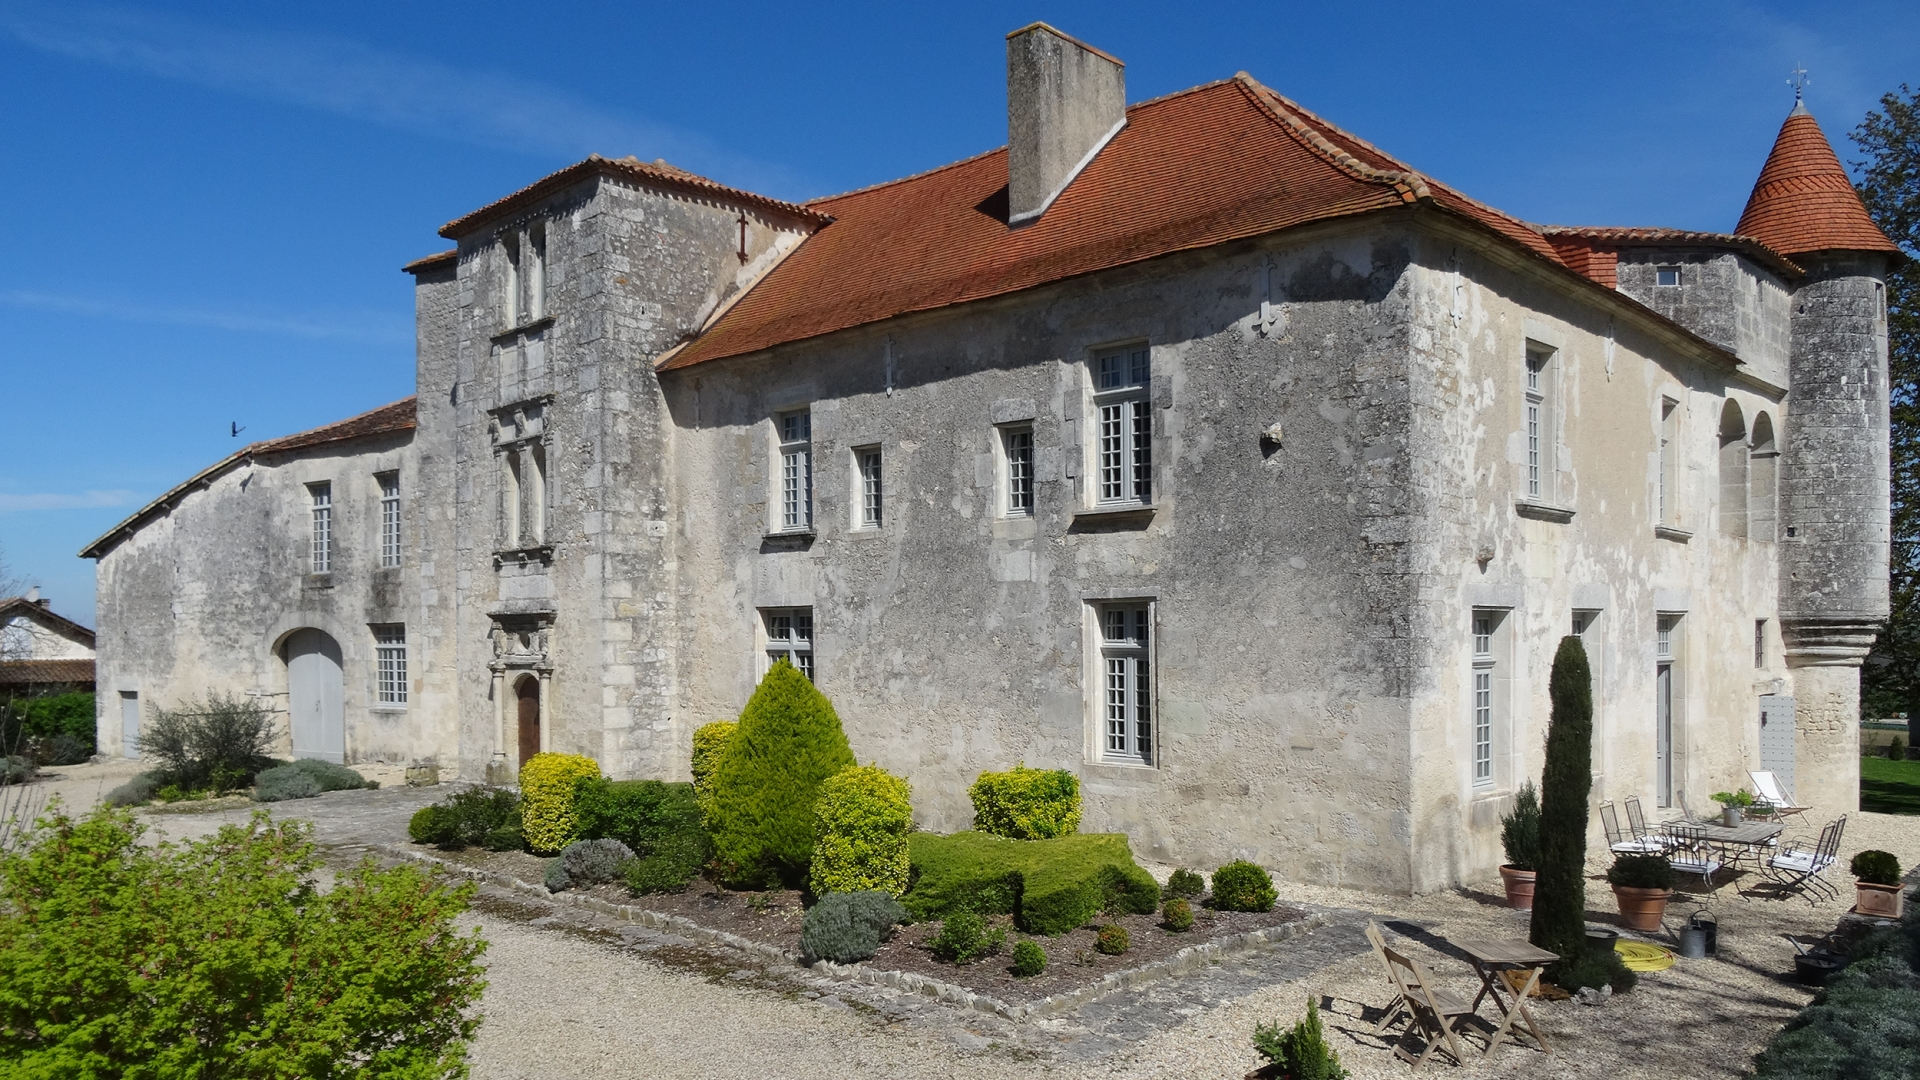 Château in Southern Charente, Angouleme.  ASKING PRICE: €1.54 million ($1.82 million). TEMPLAR CONNECTION: Built by the order during the 13th century as a commanderie, or estate under the control of a commander of a military order.  SELLING POINTS NOW: Small hilltop village location, 9 bedrooms, an architectural blend of Roman and Renaissance styles, a scullery, and a church and refectory on the property. (Photo courtesy of Maxwell-Baynes)